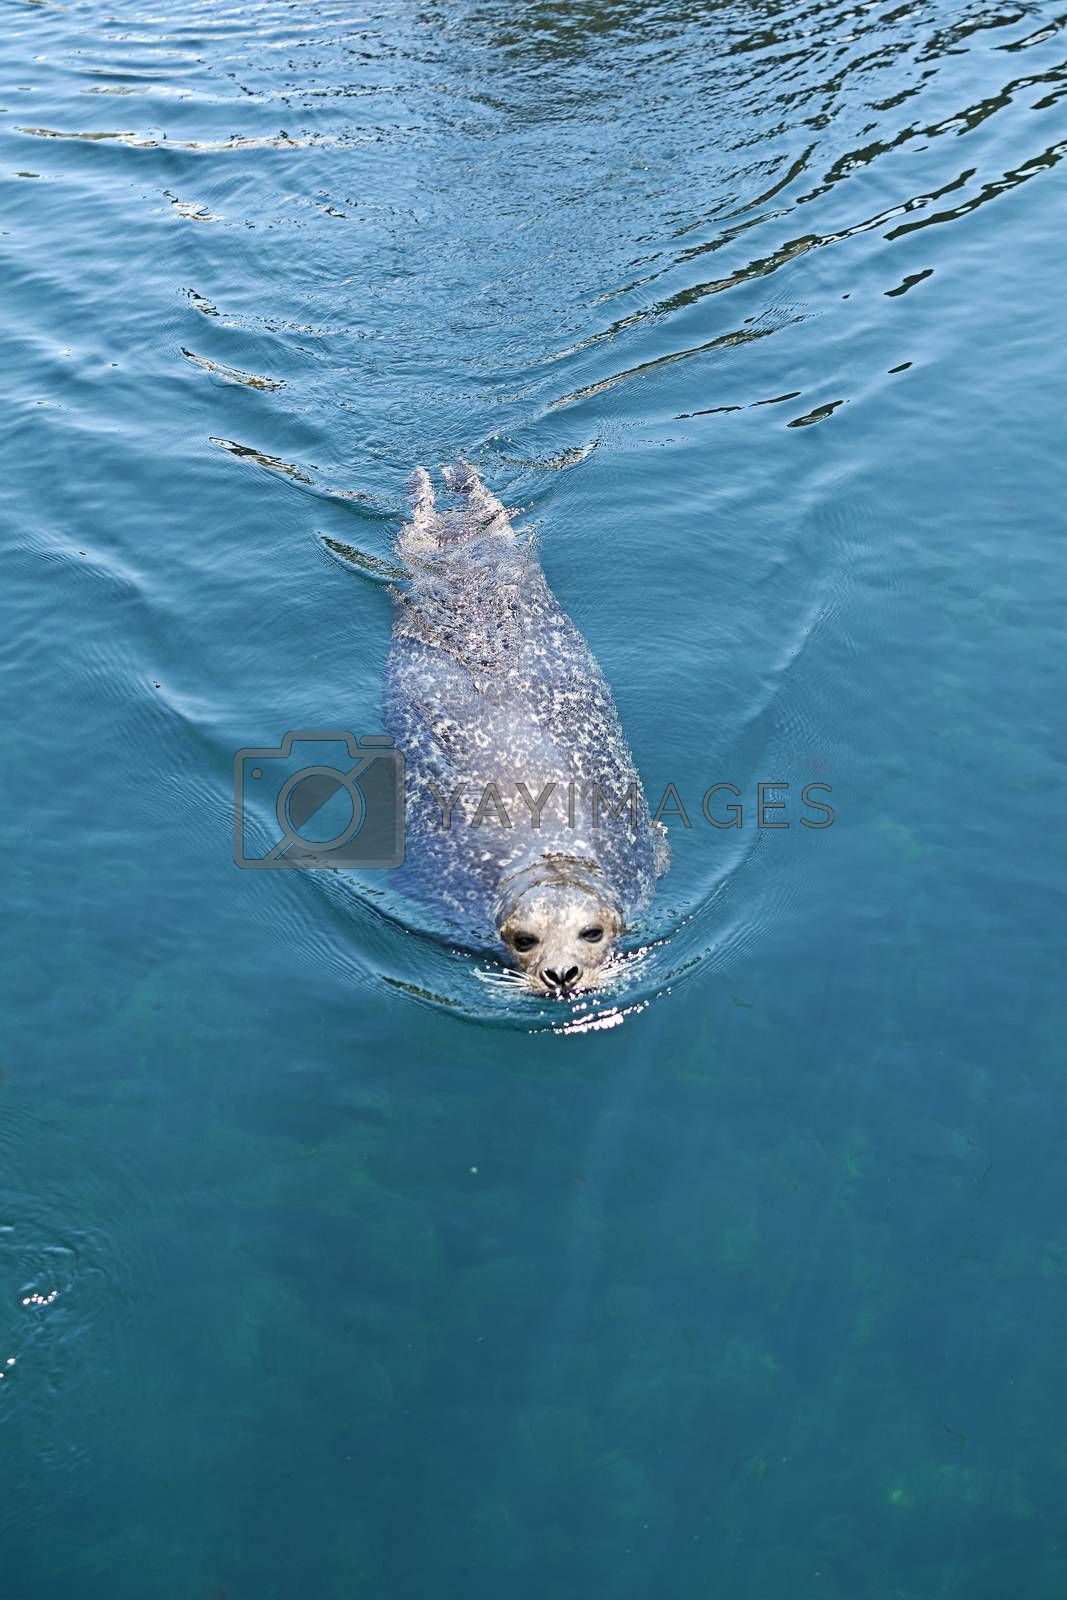 Common seal swimming across the water surface by Raul Ruiz